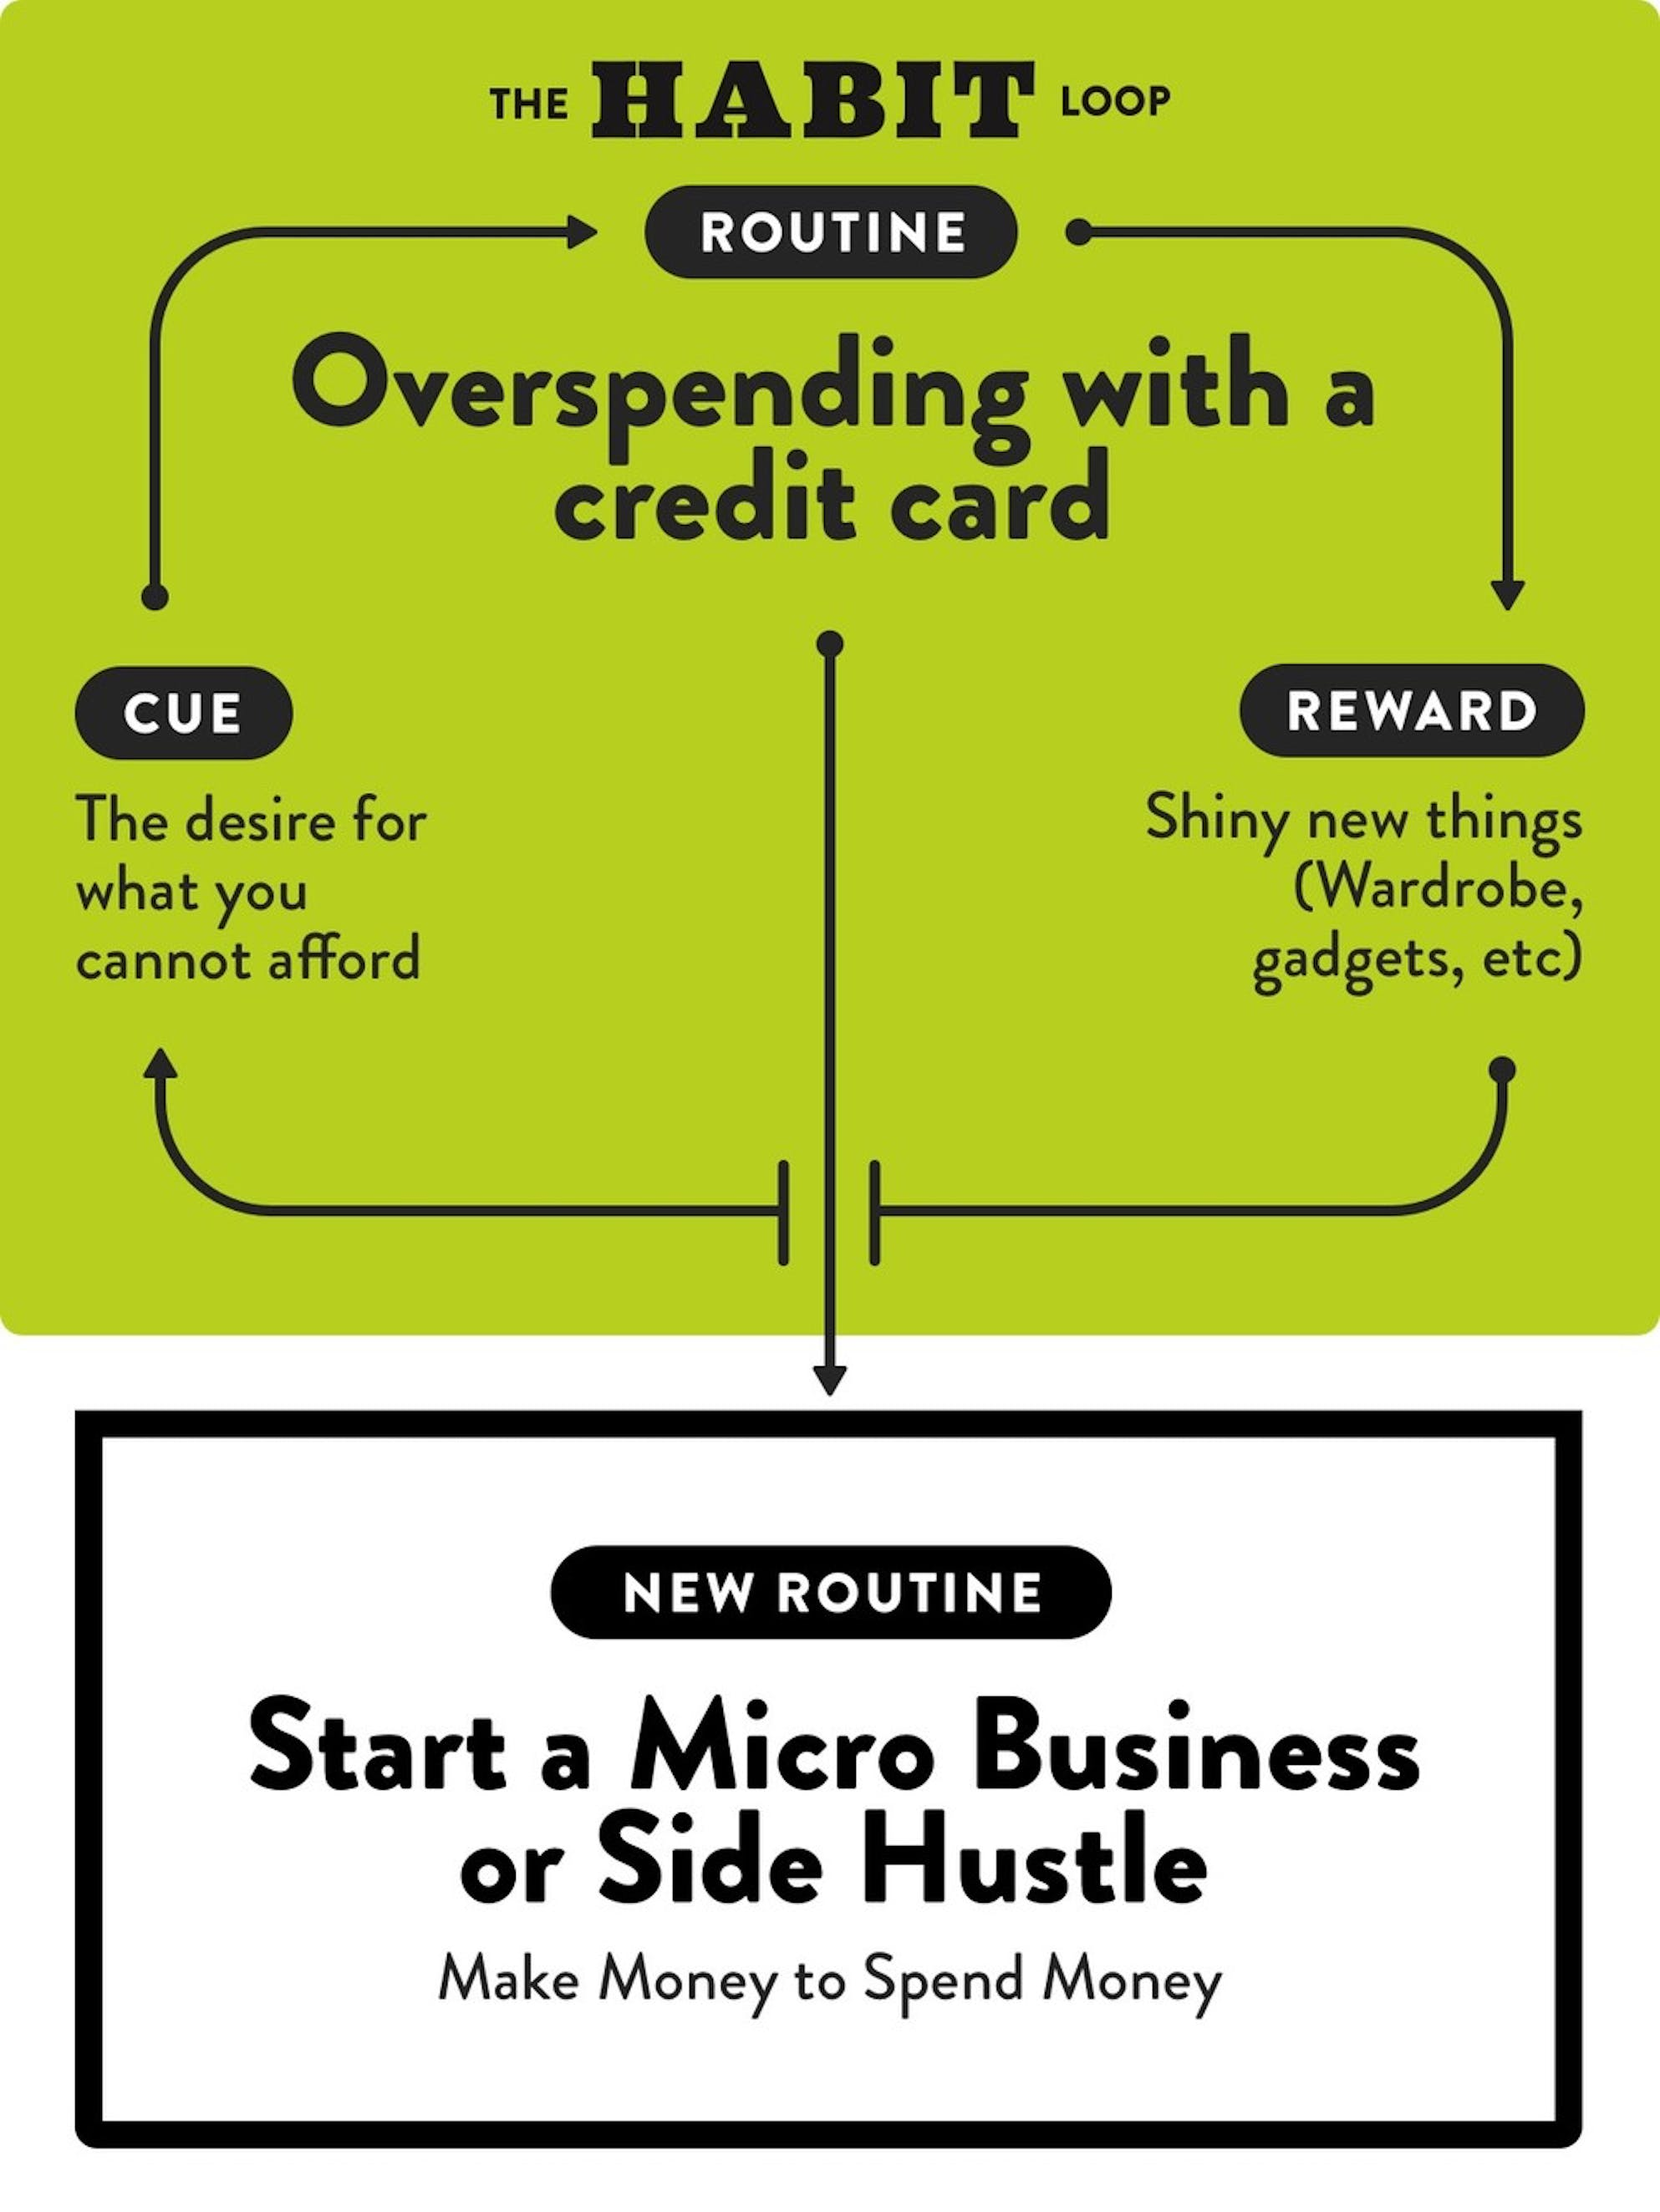 How to spend less money: Overspending with a credit card habit loop